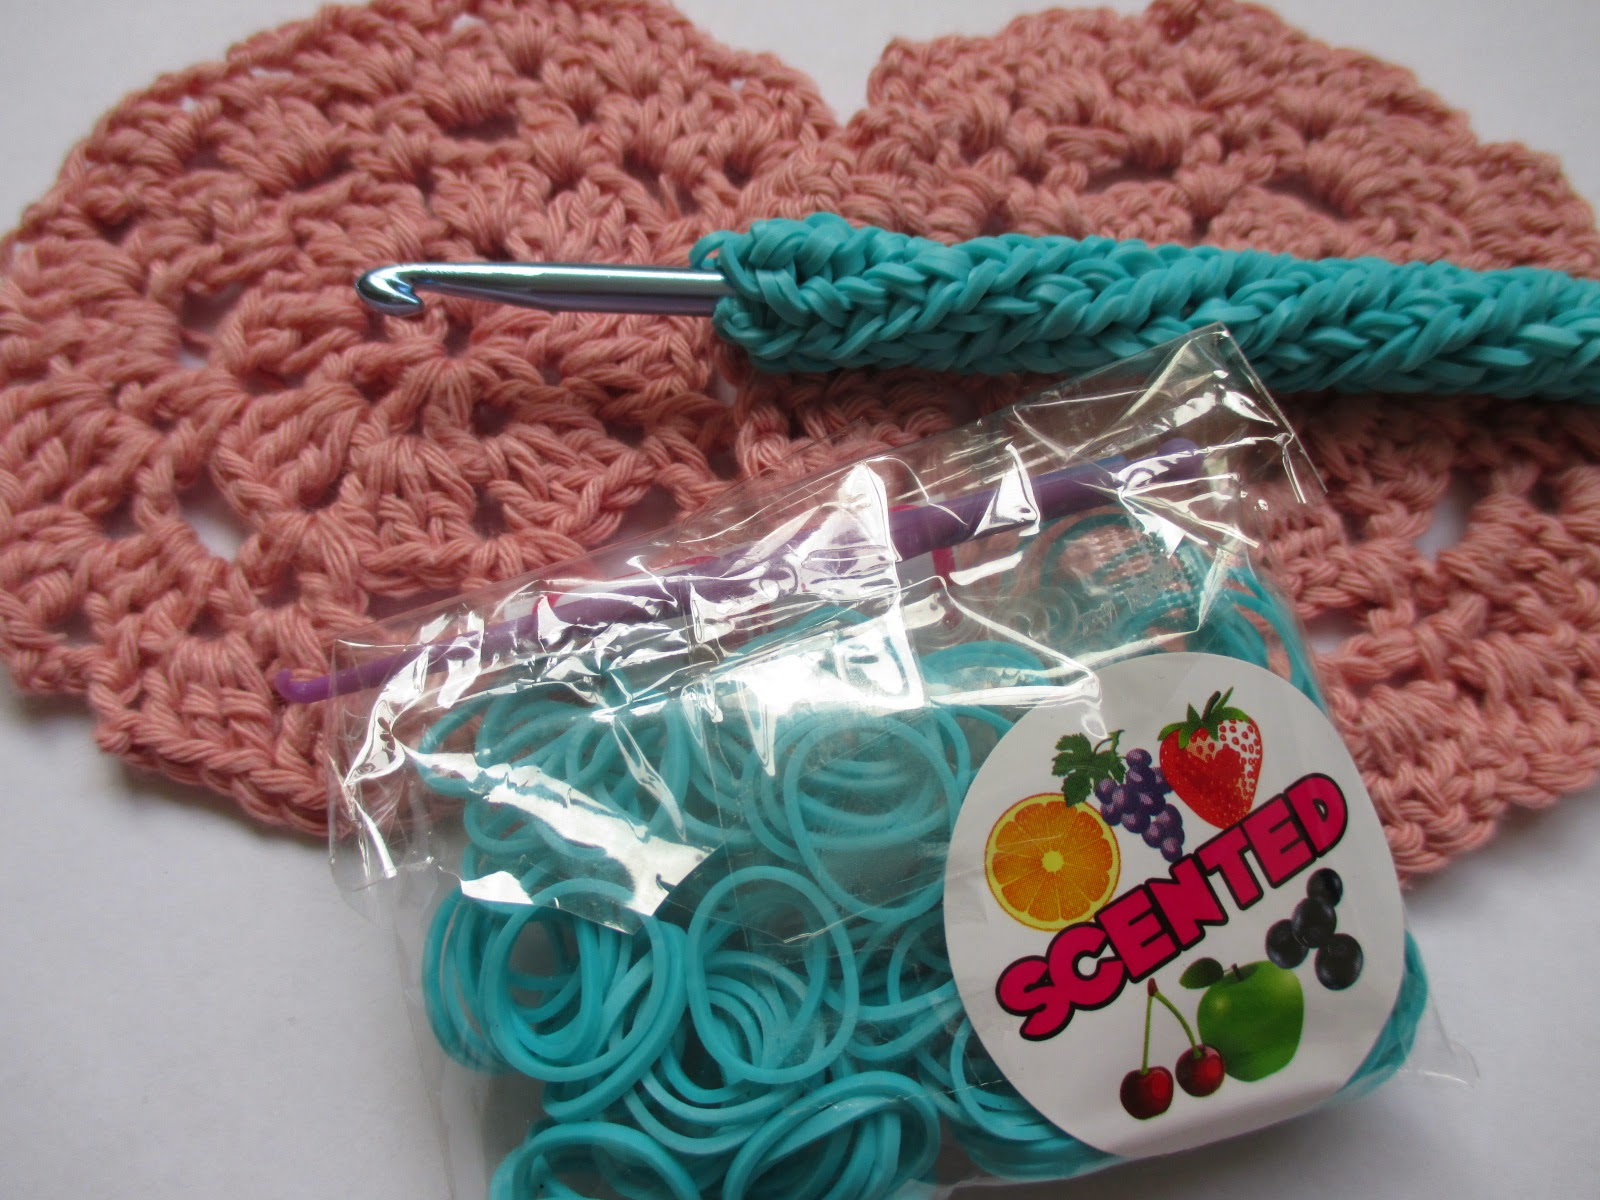 For the Love of Crochet Along: Crochet meets Loom Bands